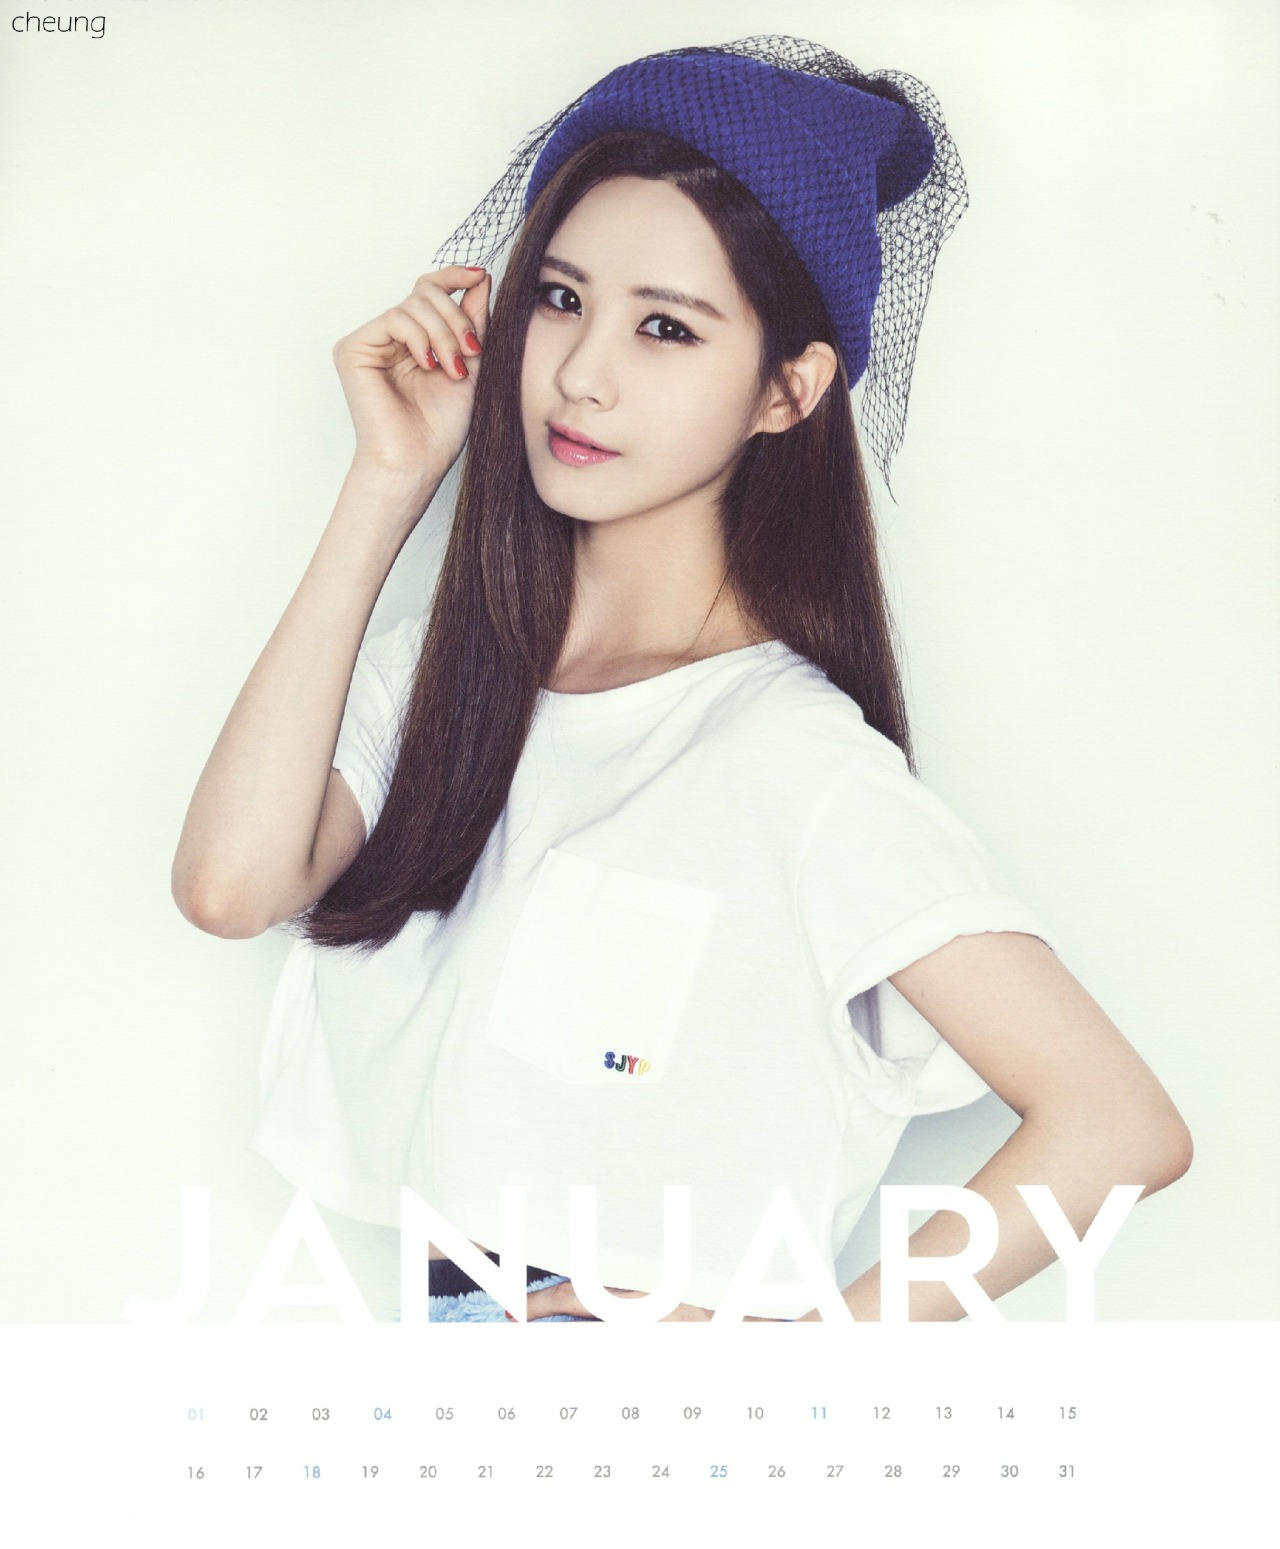 Girls' Generation Calendar 2015